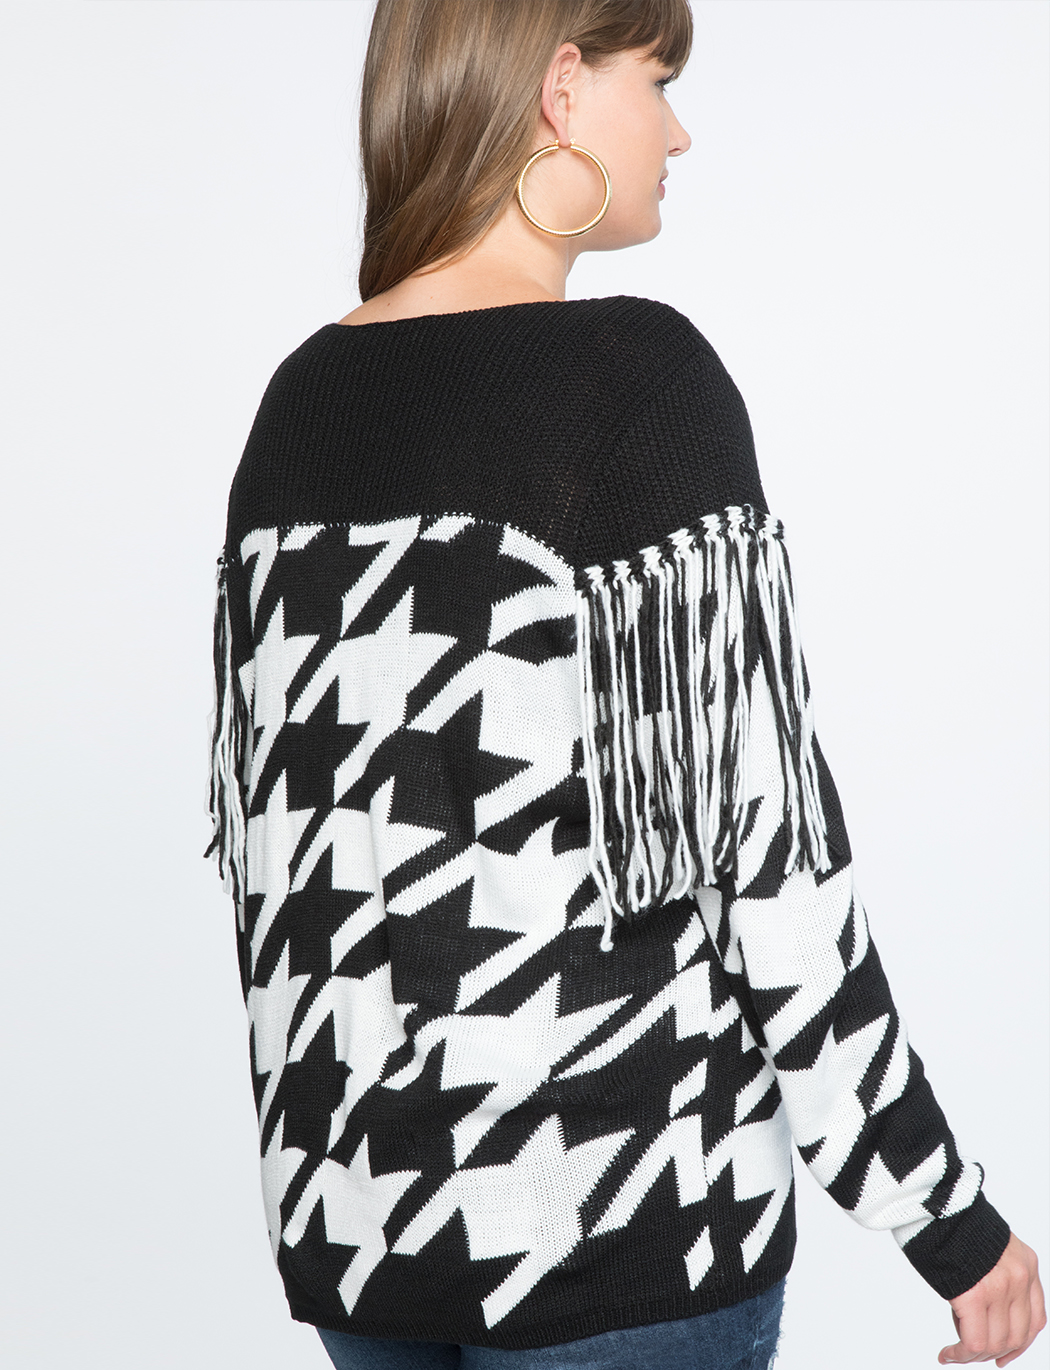 Houndstooth Fringe Sweater